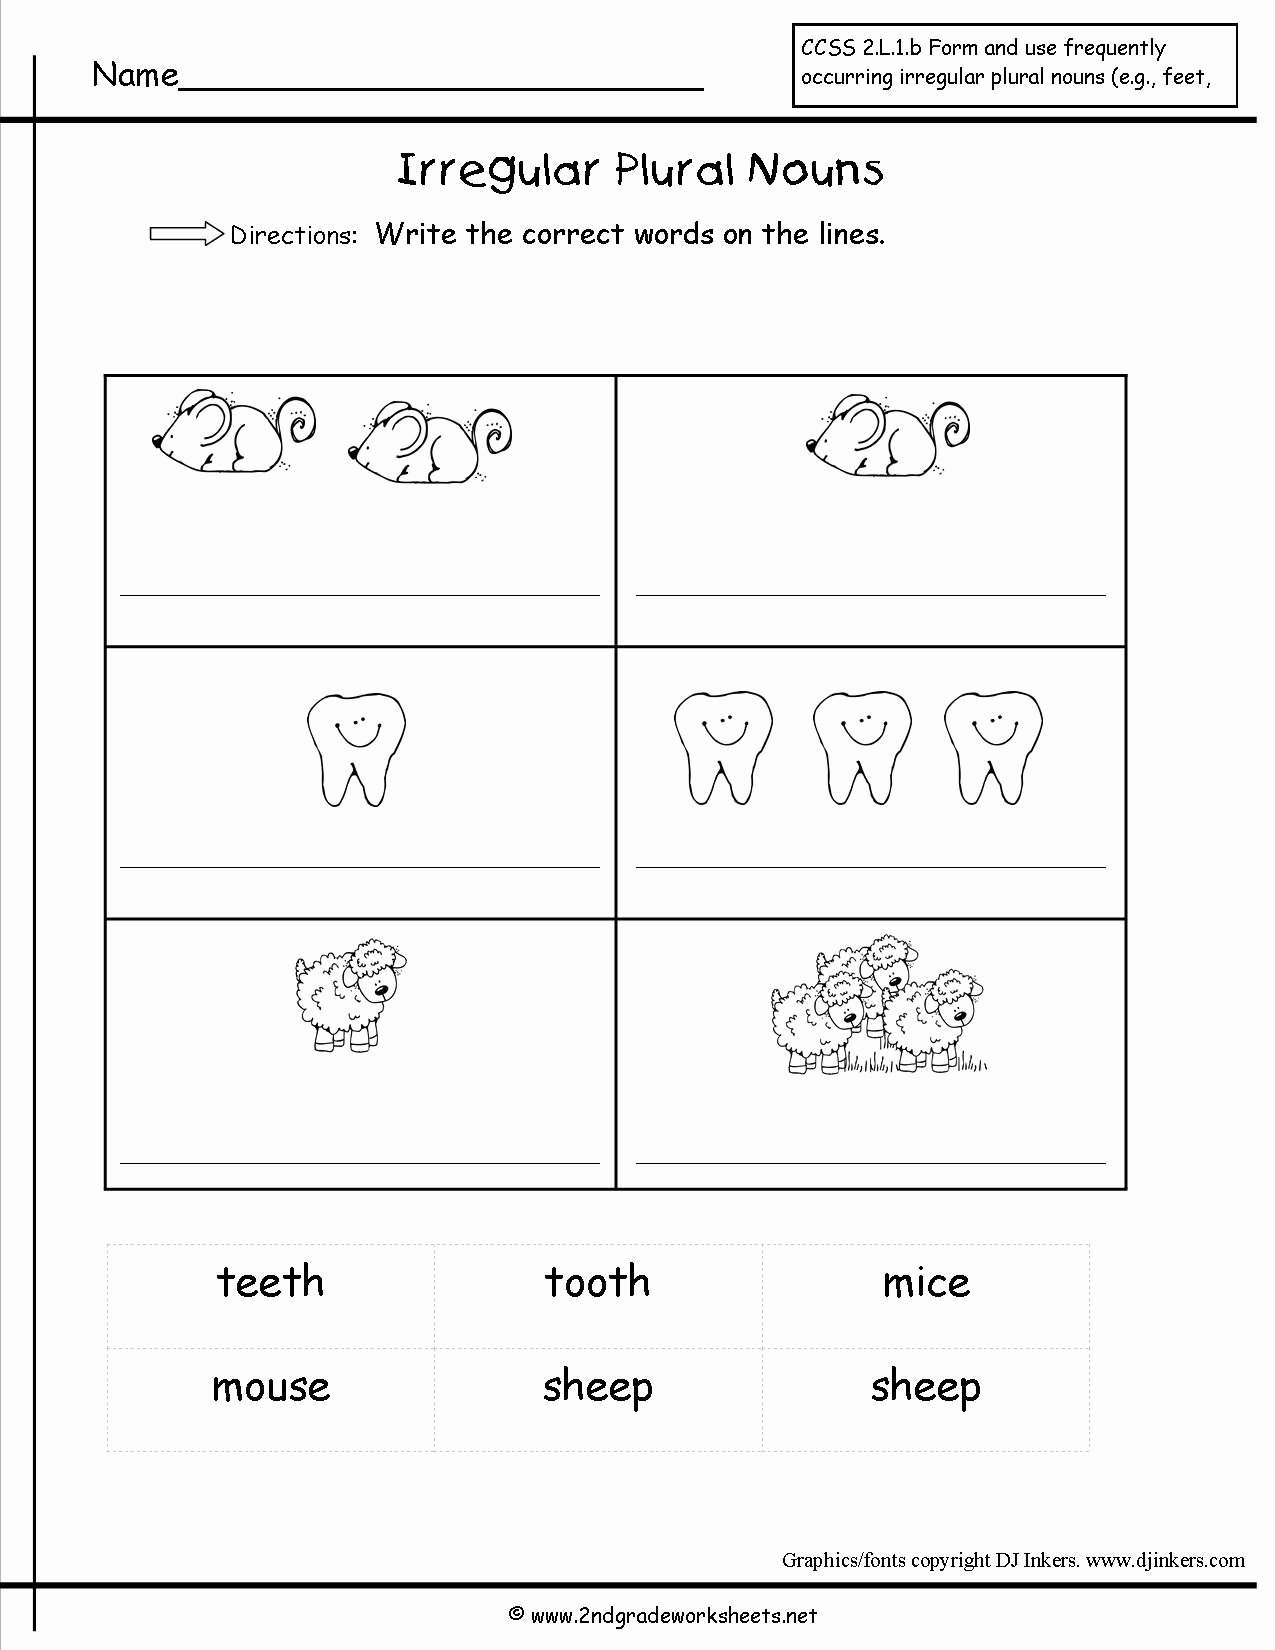 50 Irregular Plural Nouns Worksheet